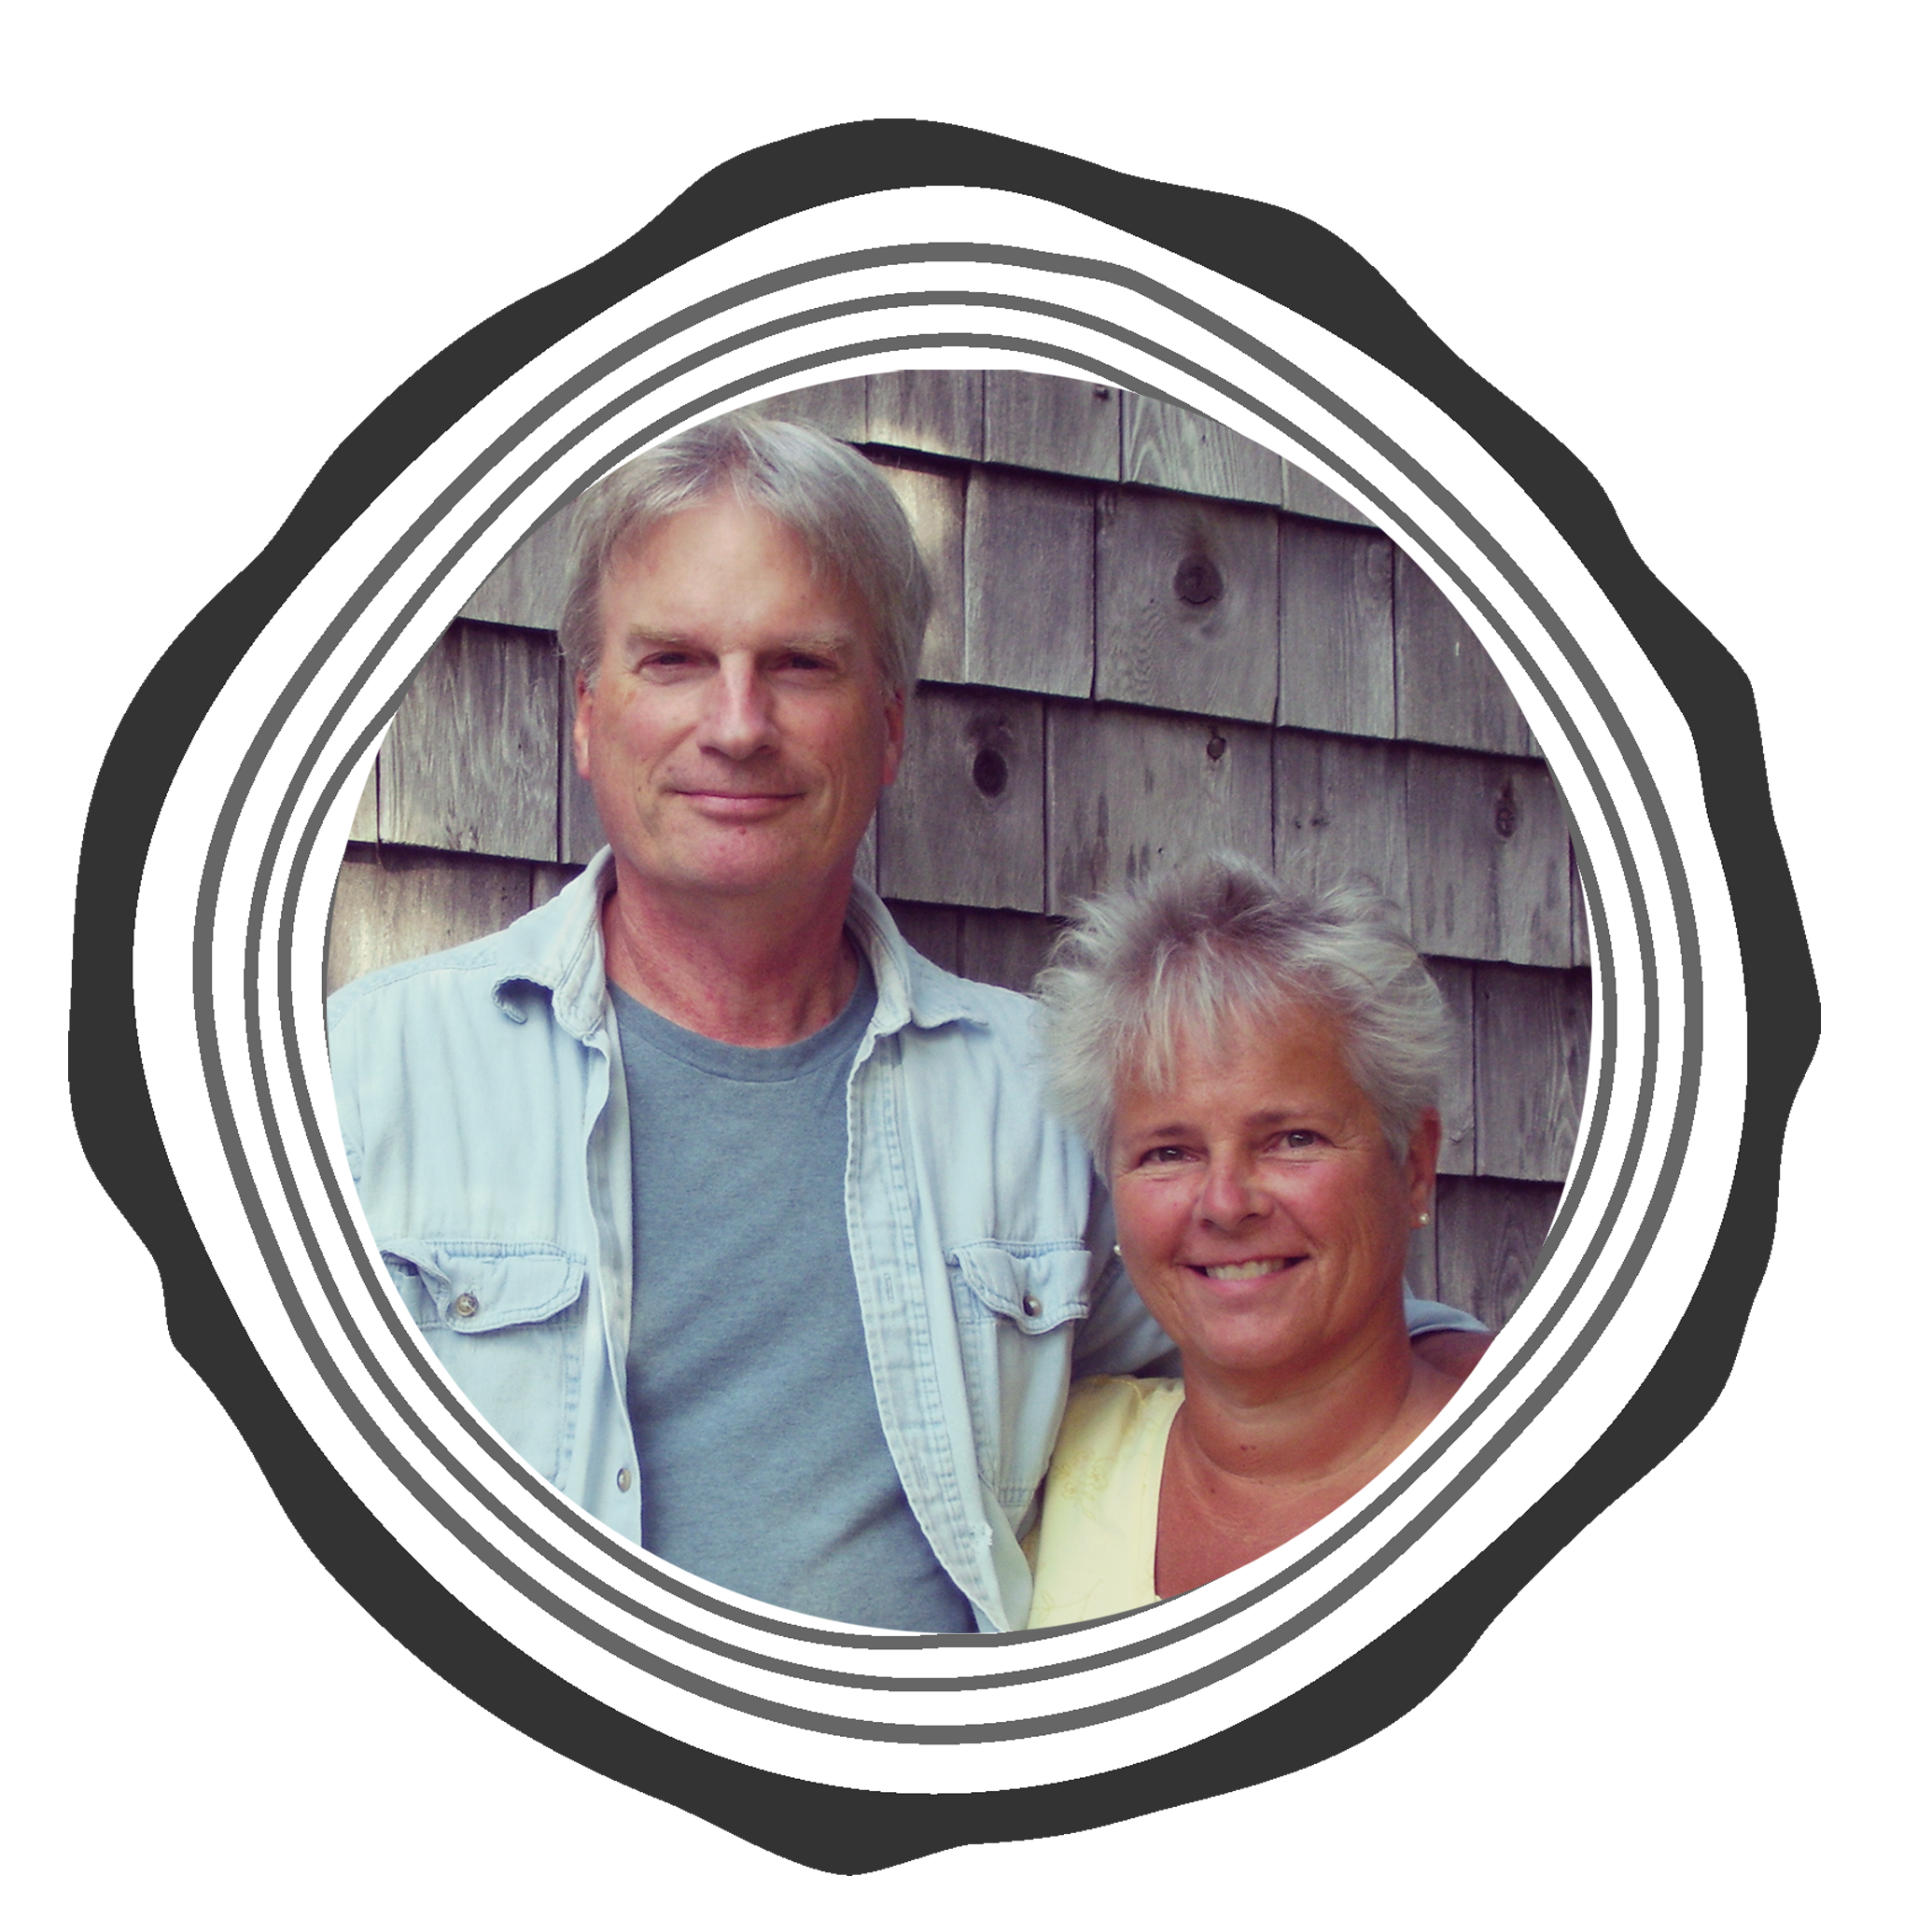 Jim and Teresa England- Owners and builders at the Woodshaper Shop of Maine